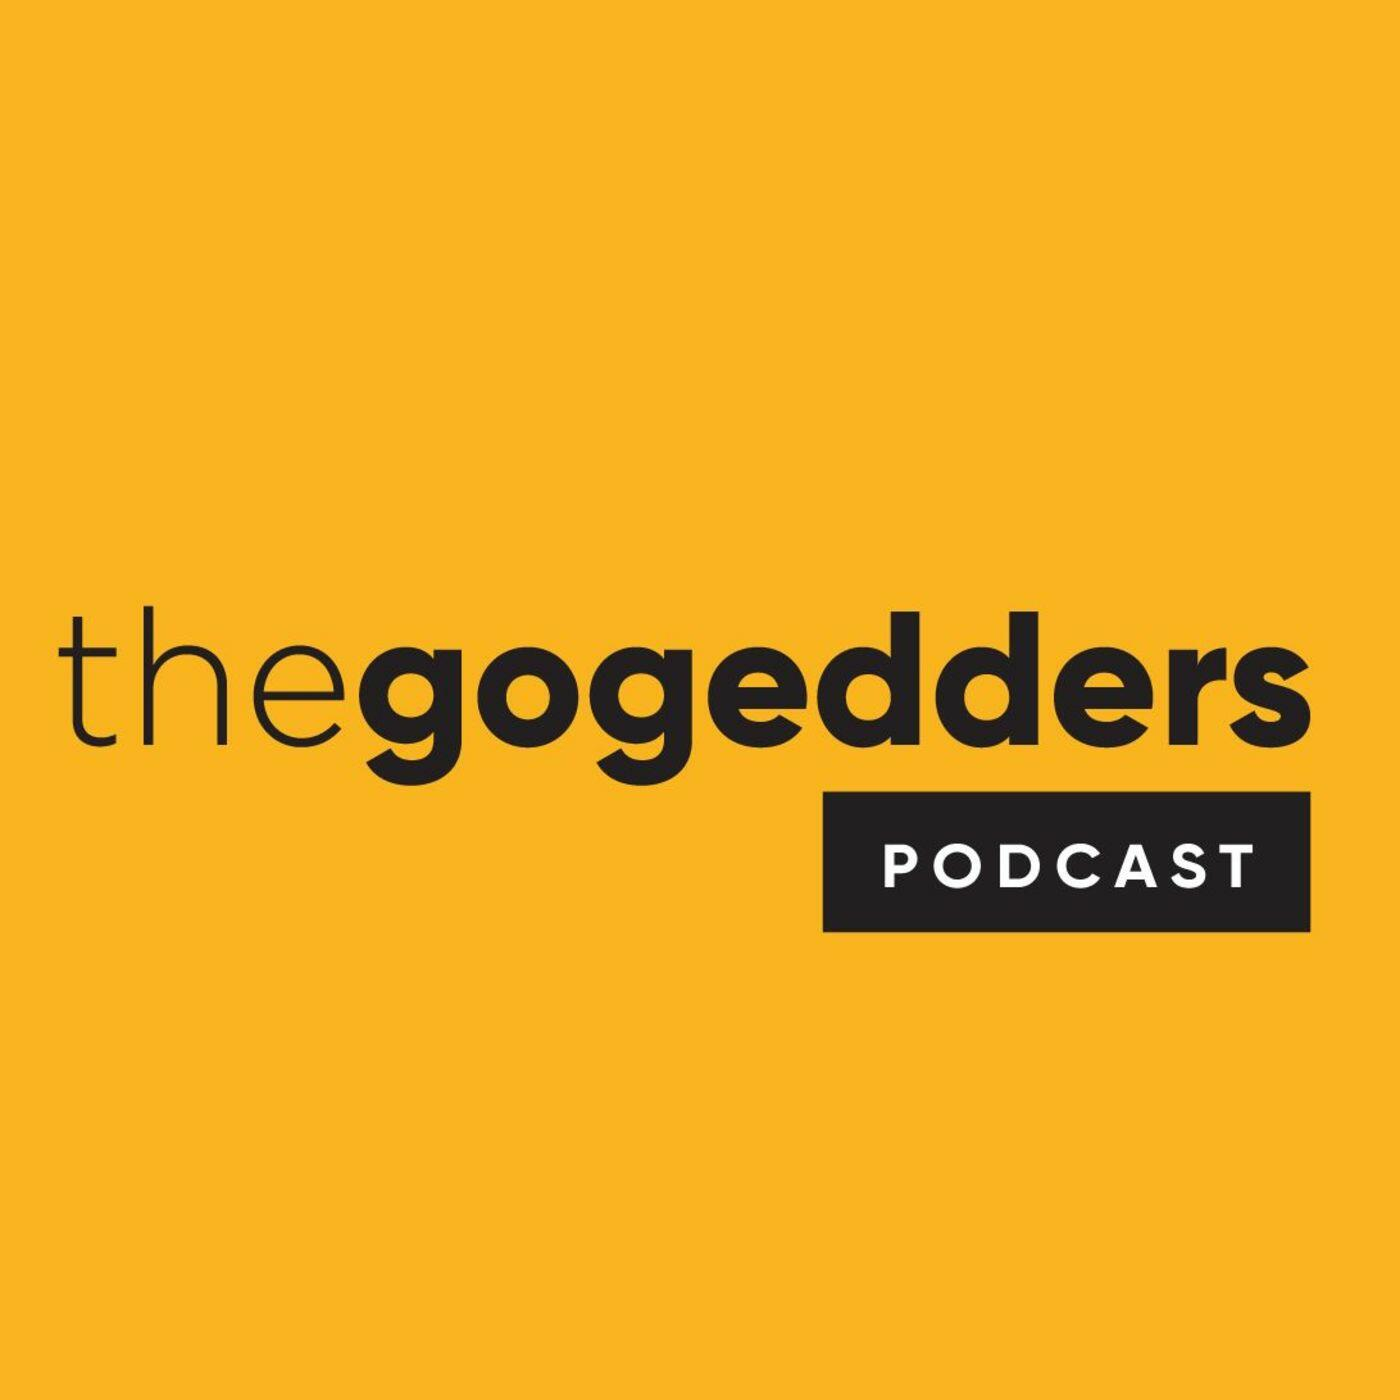 The GoGedders Podcast